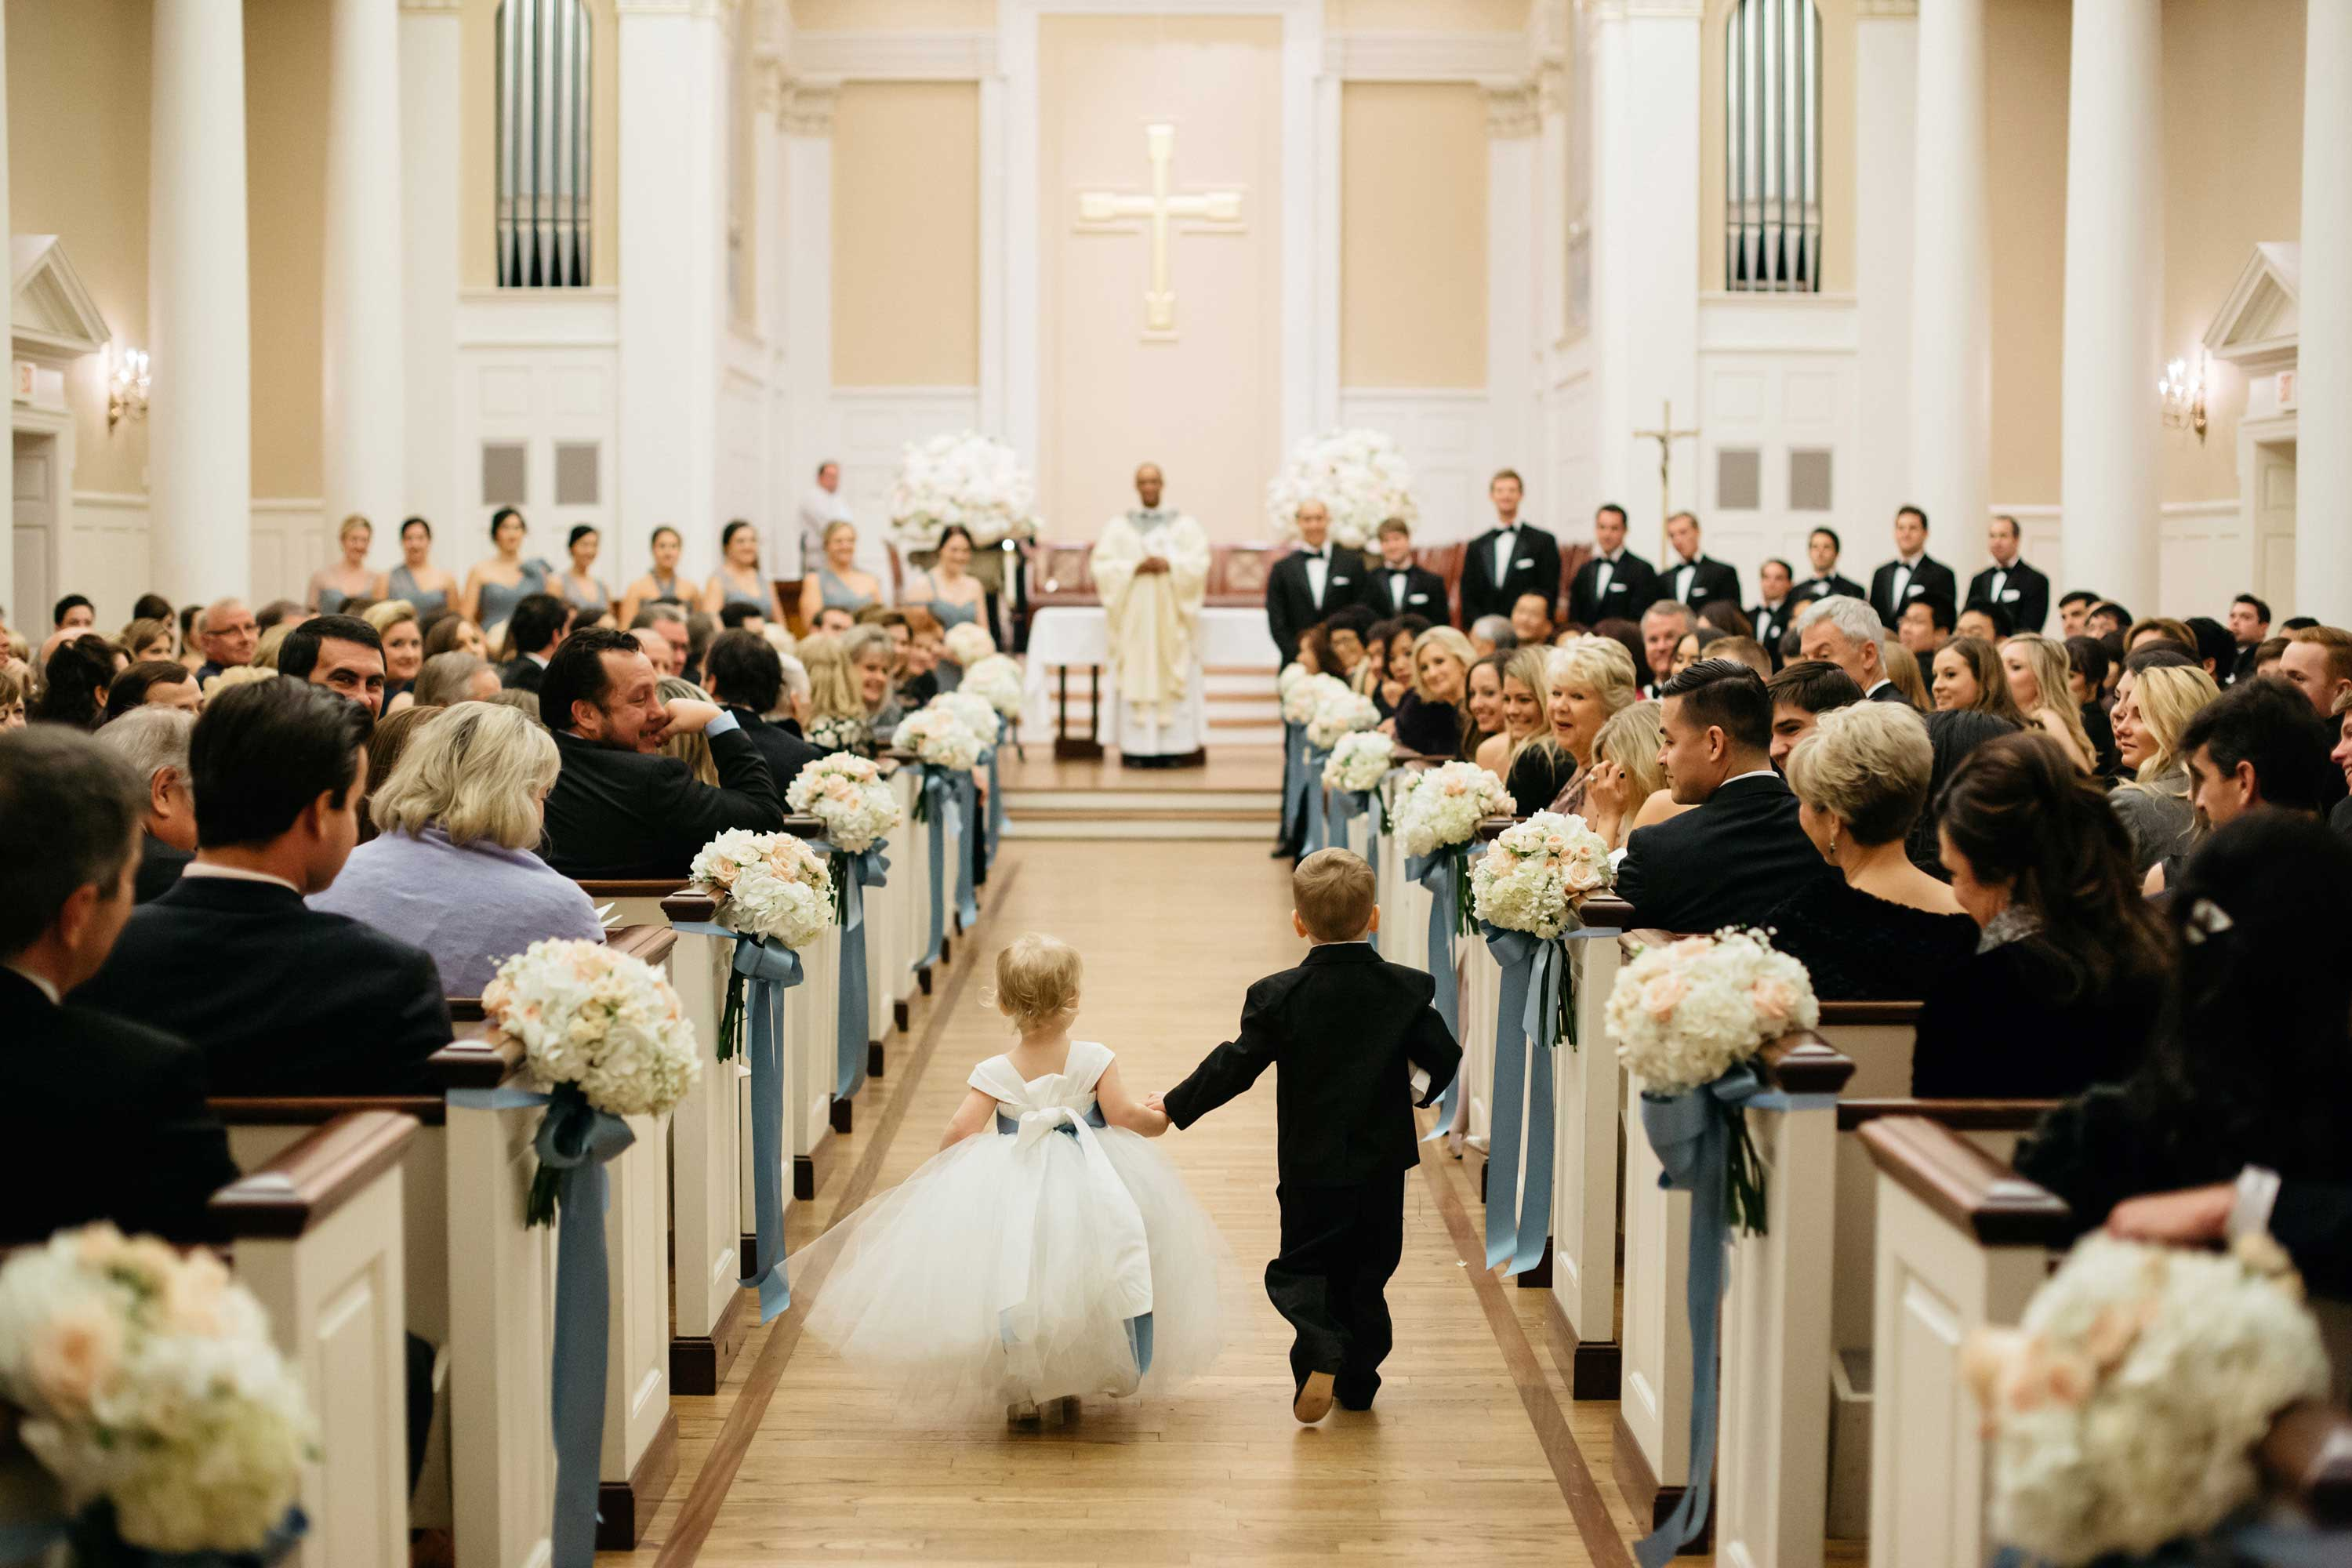 Lot of Wedding Program Examples - perfect wedding day Pictures of church wedding ceremony decorations